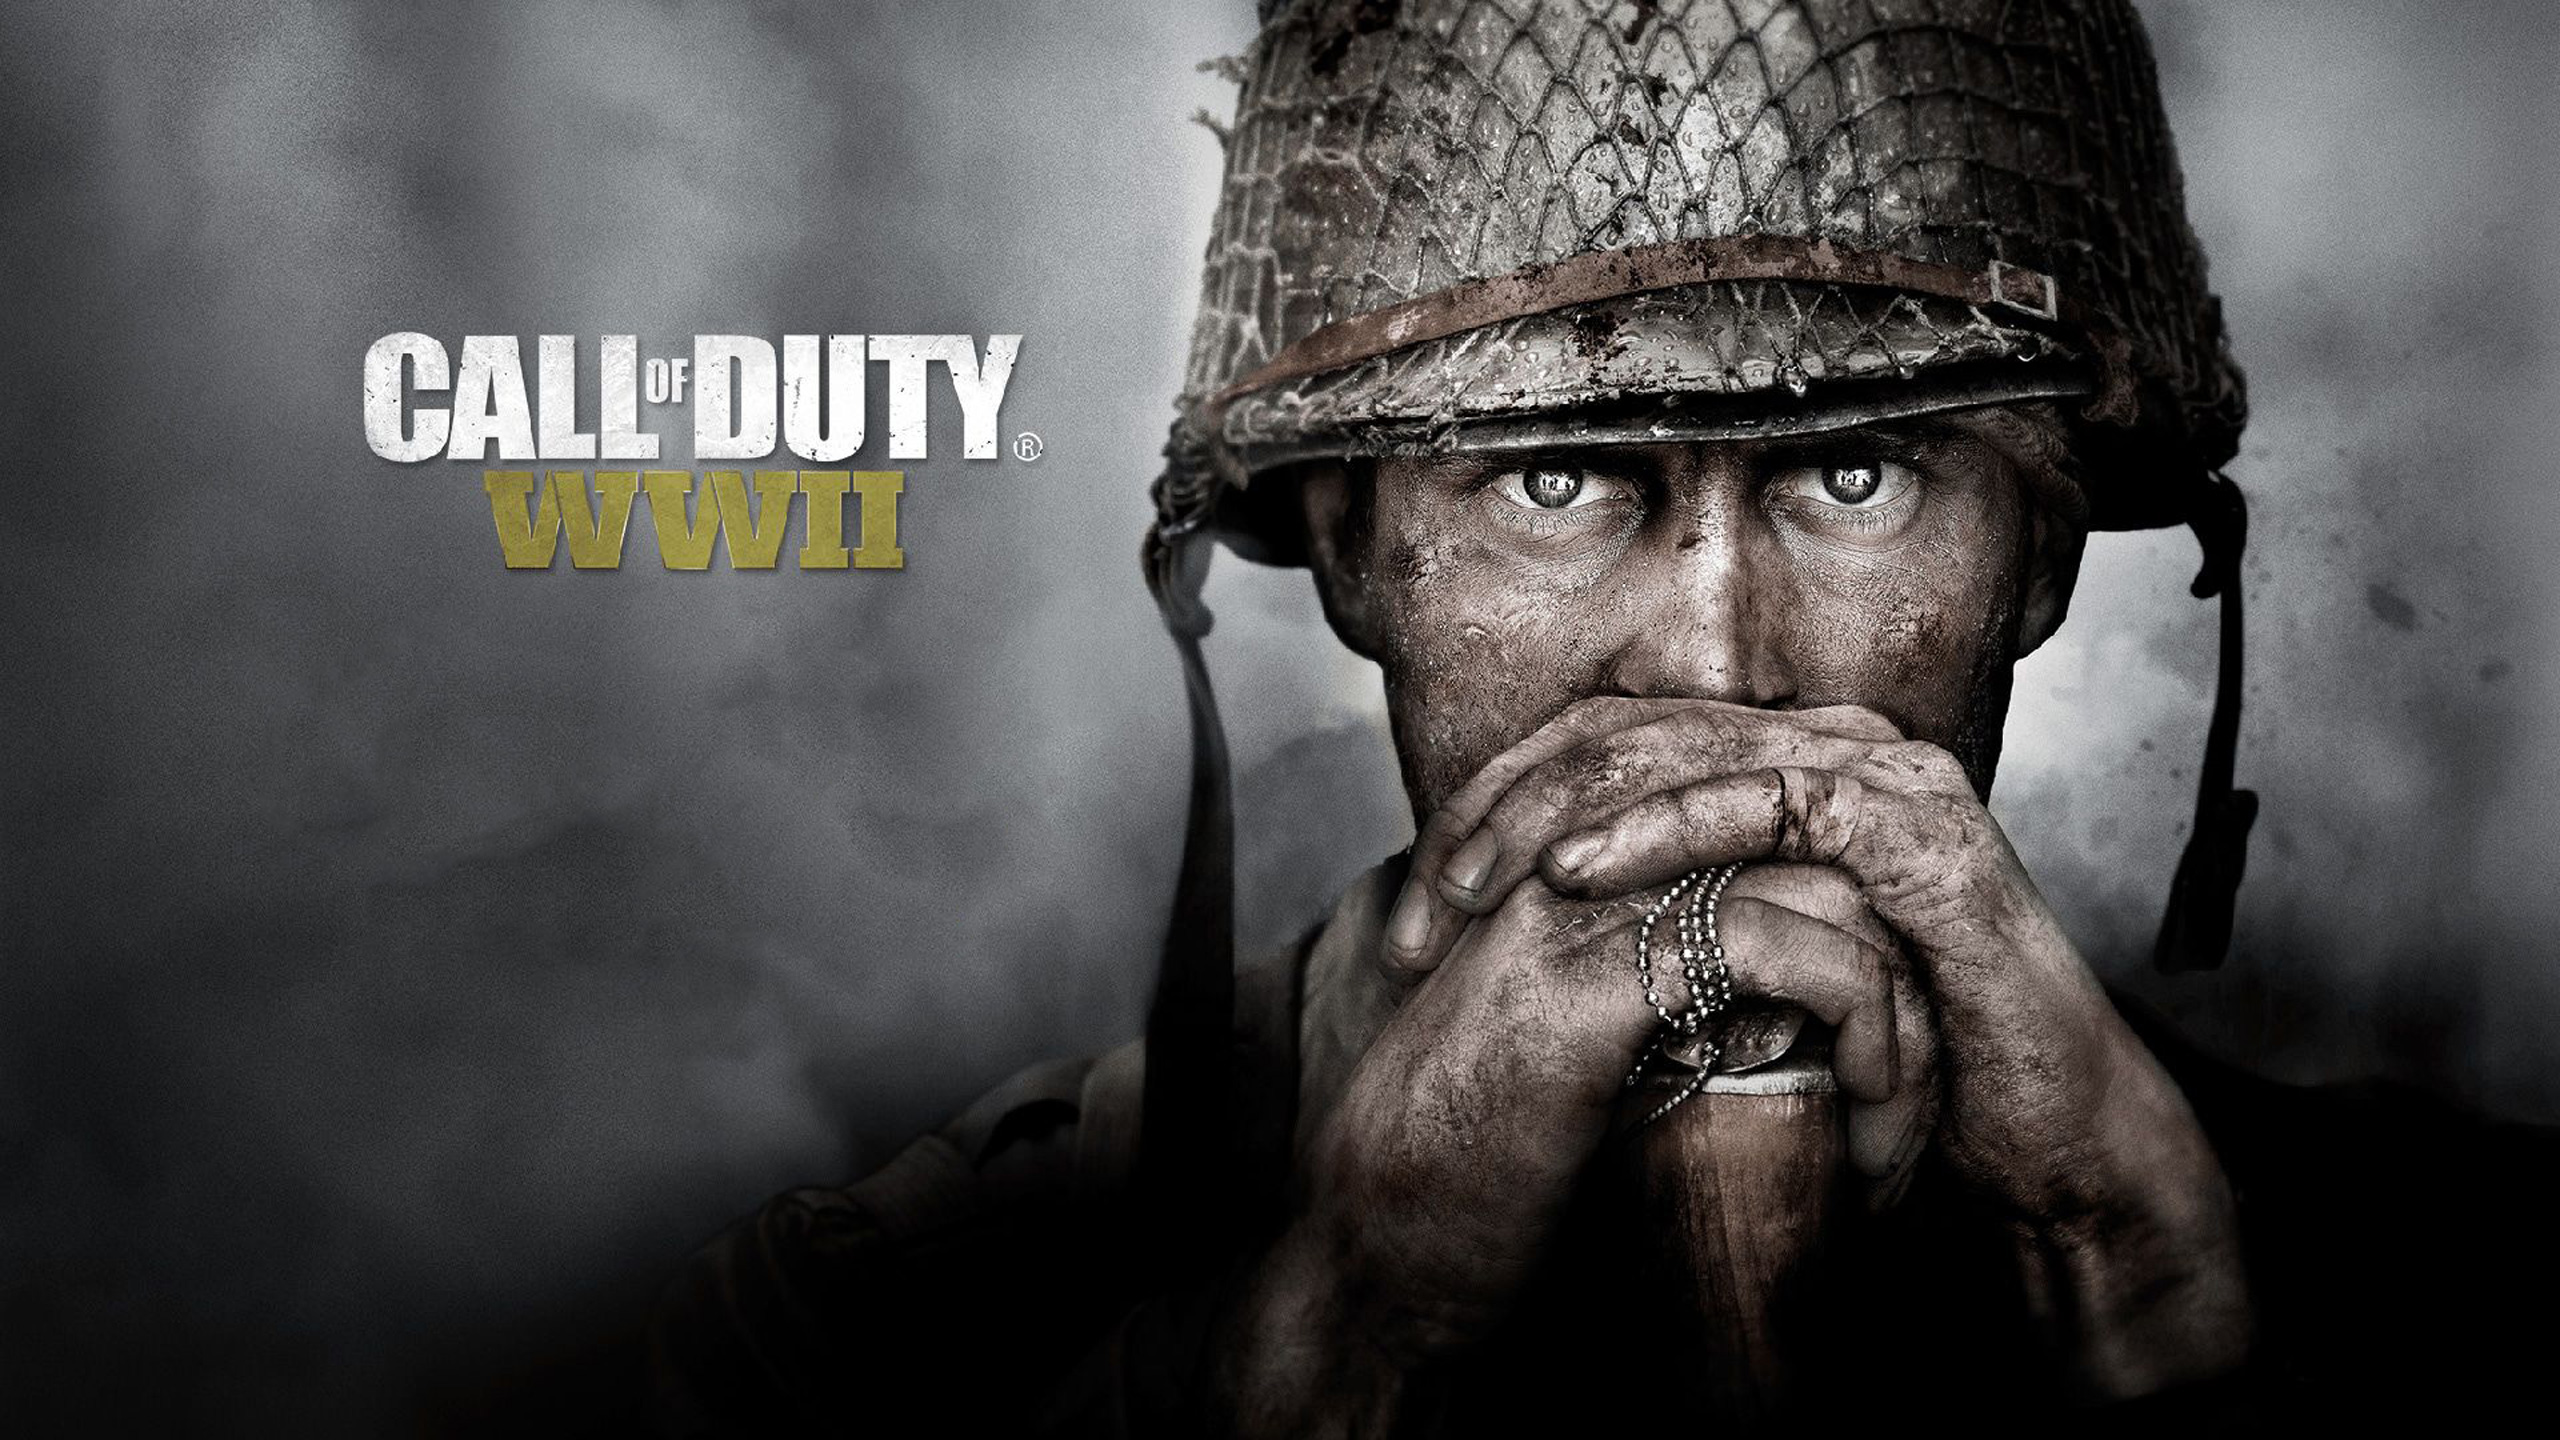 call of duty wwii wallpaper background 61209